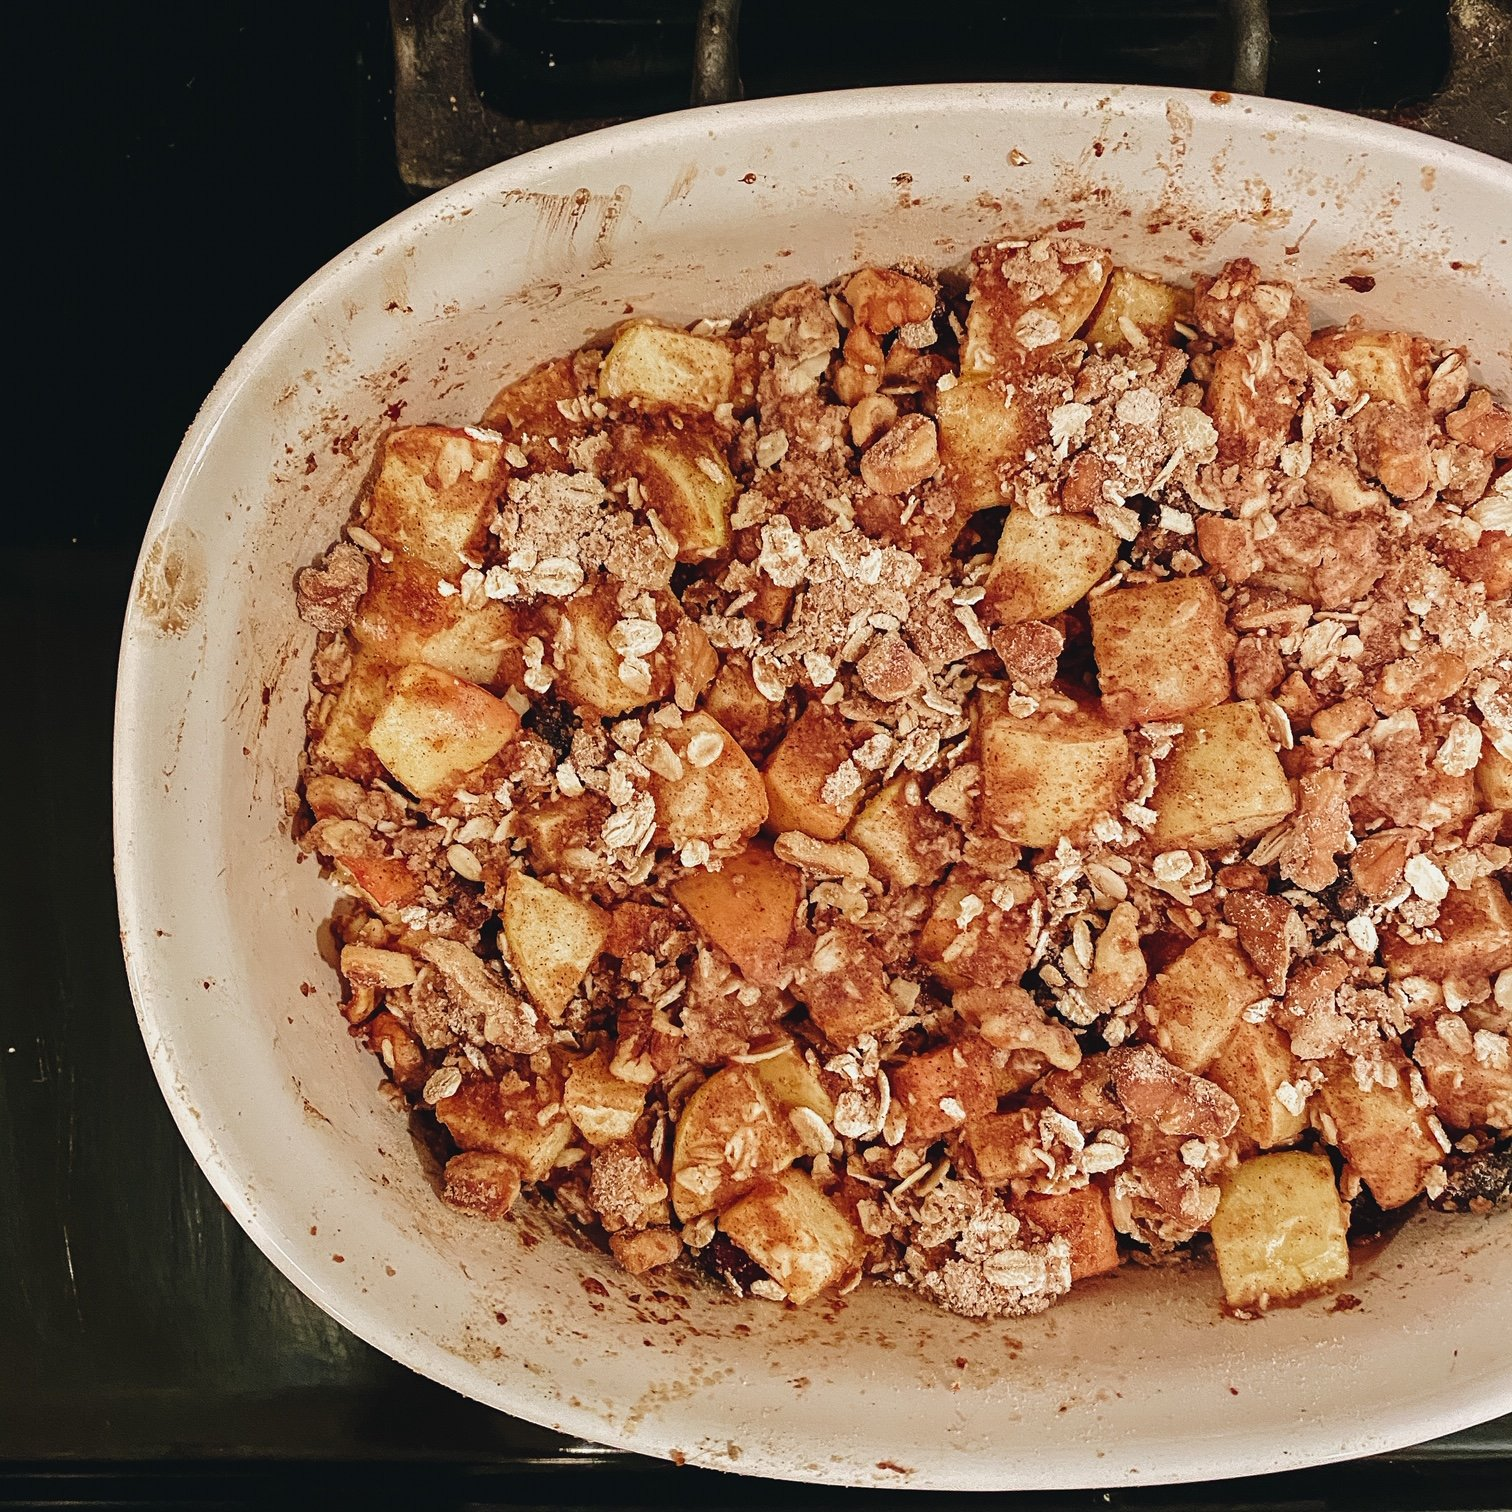 Apple Cranberry Crisp in Baking Pan